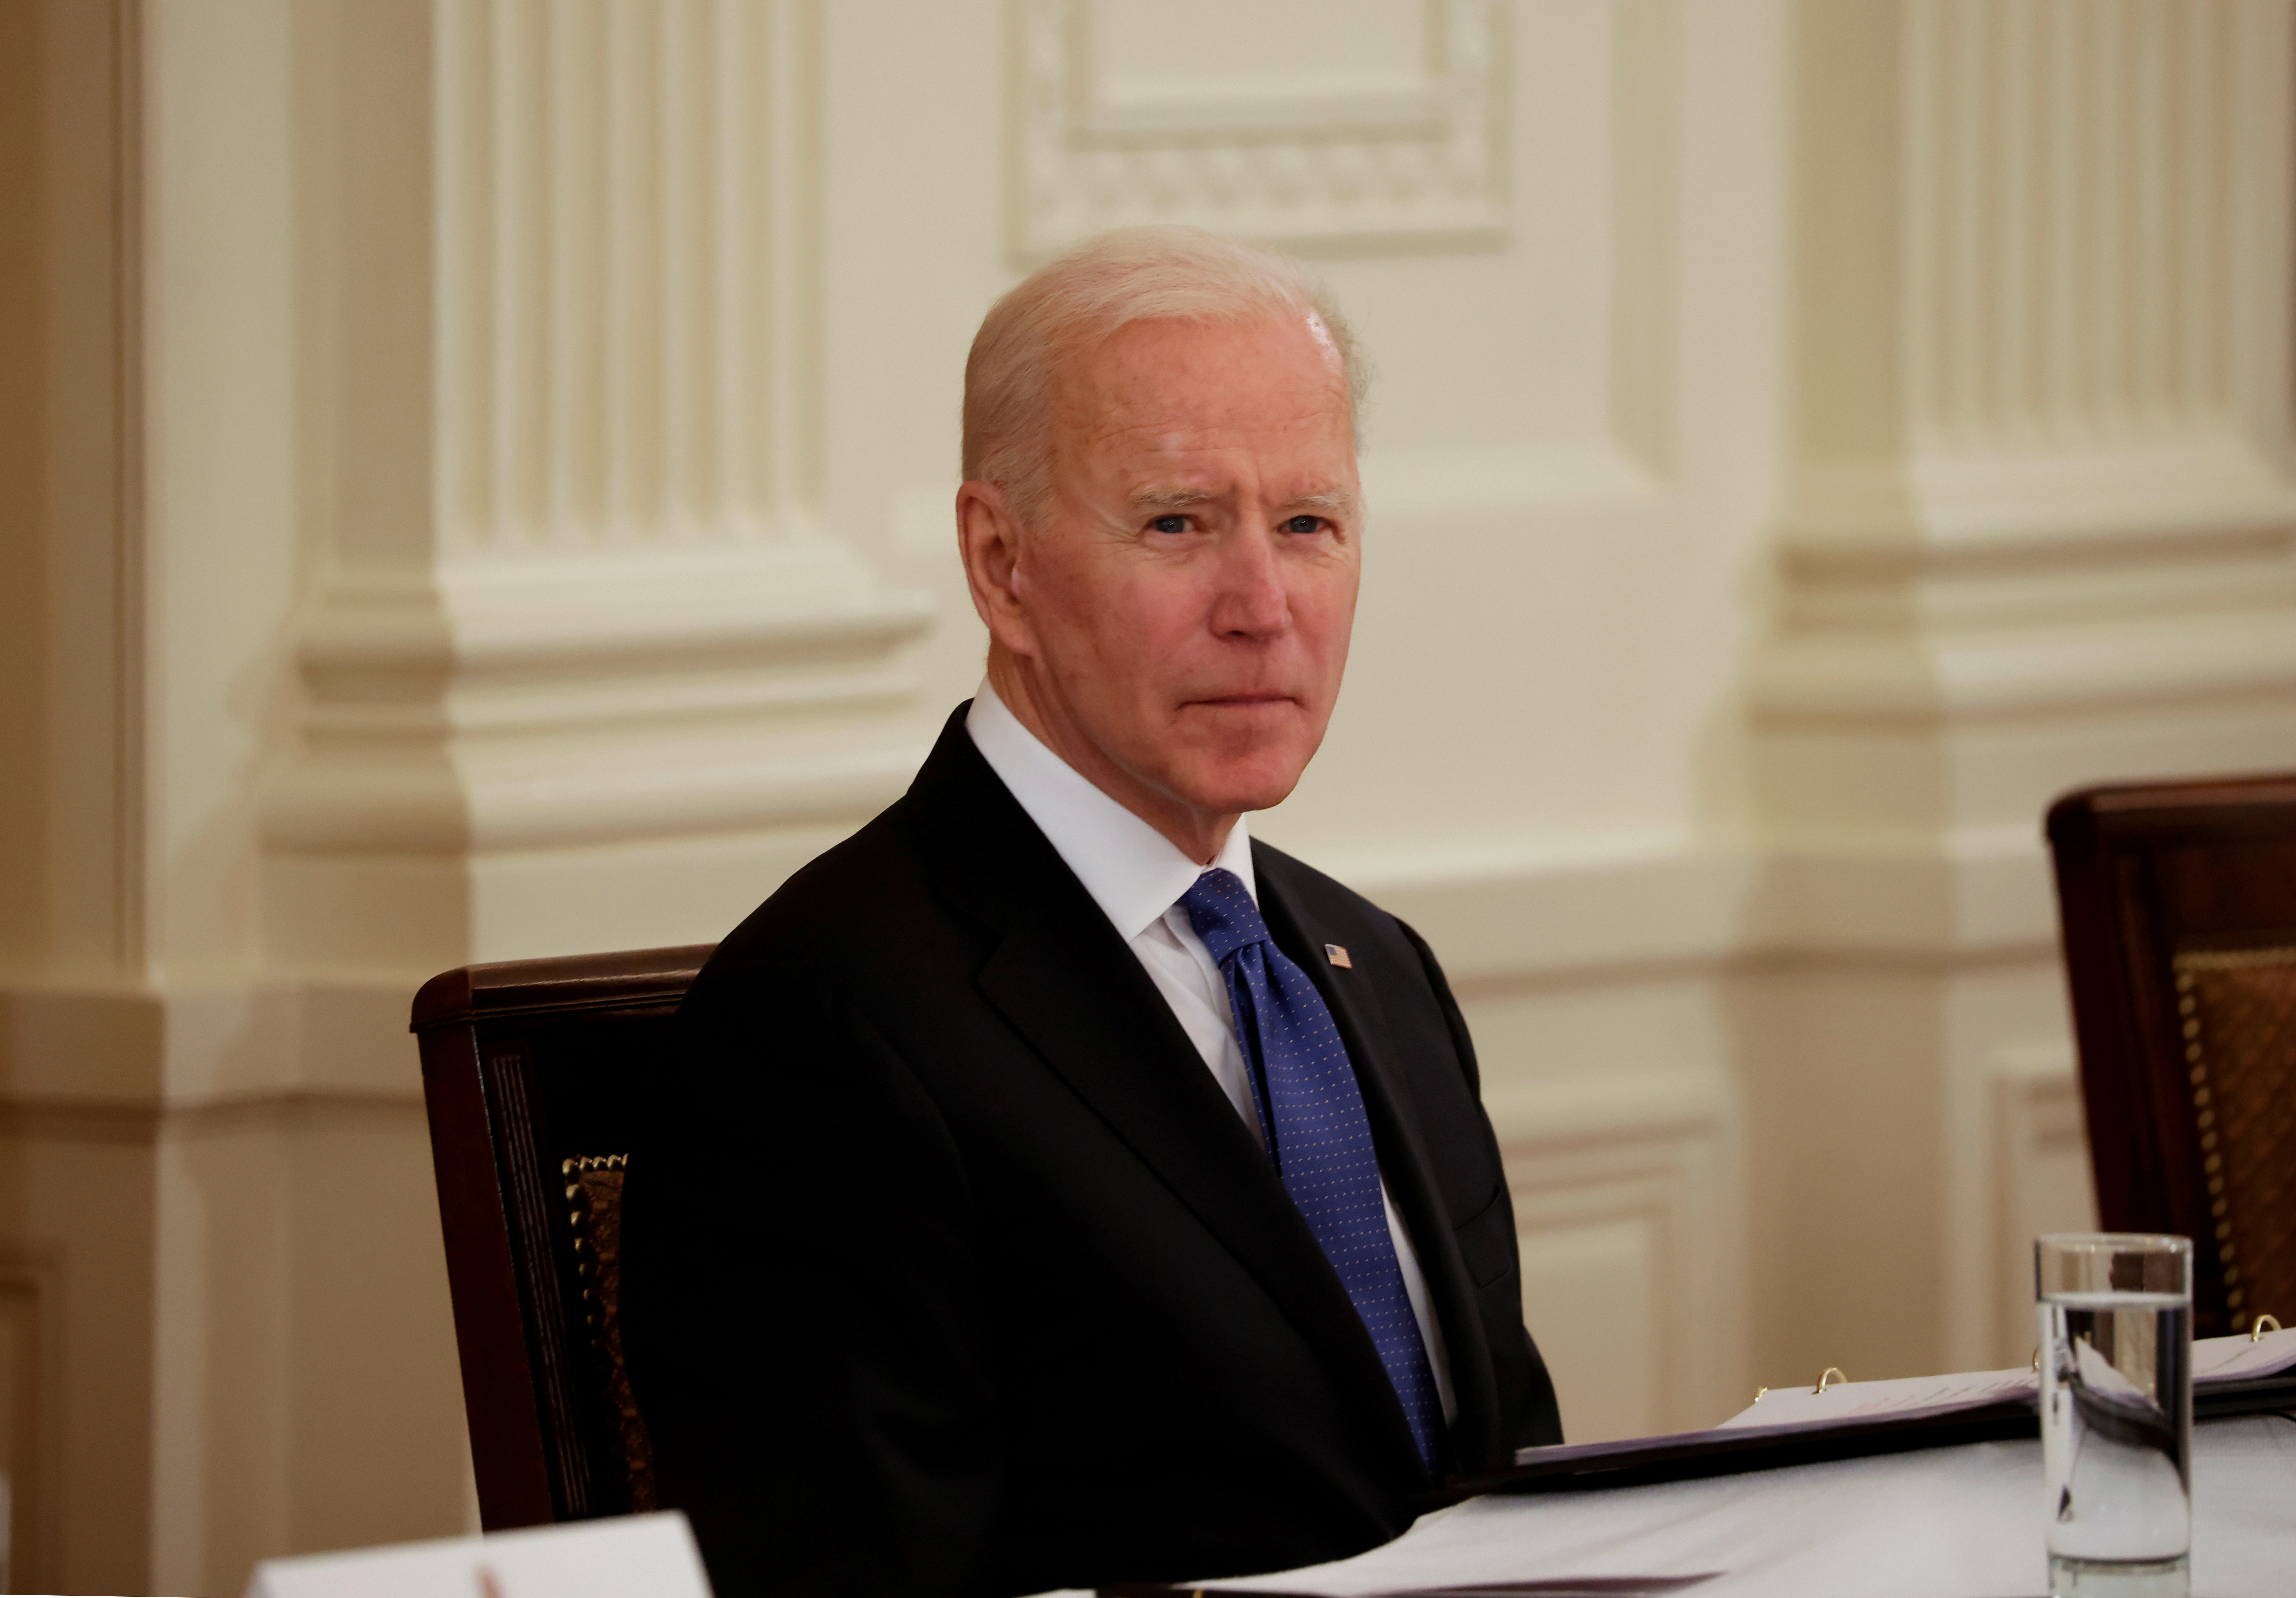 U.S. President Joe Biden holds first Cabinet meeting at the White House in Washington, U.S., April 1, 2021. REUTERS/Tom Brenner